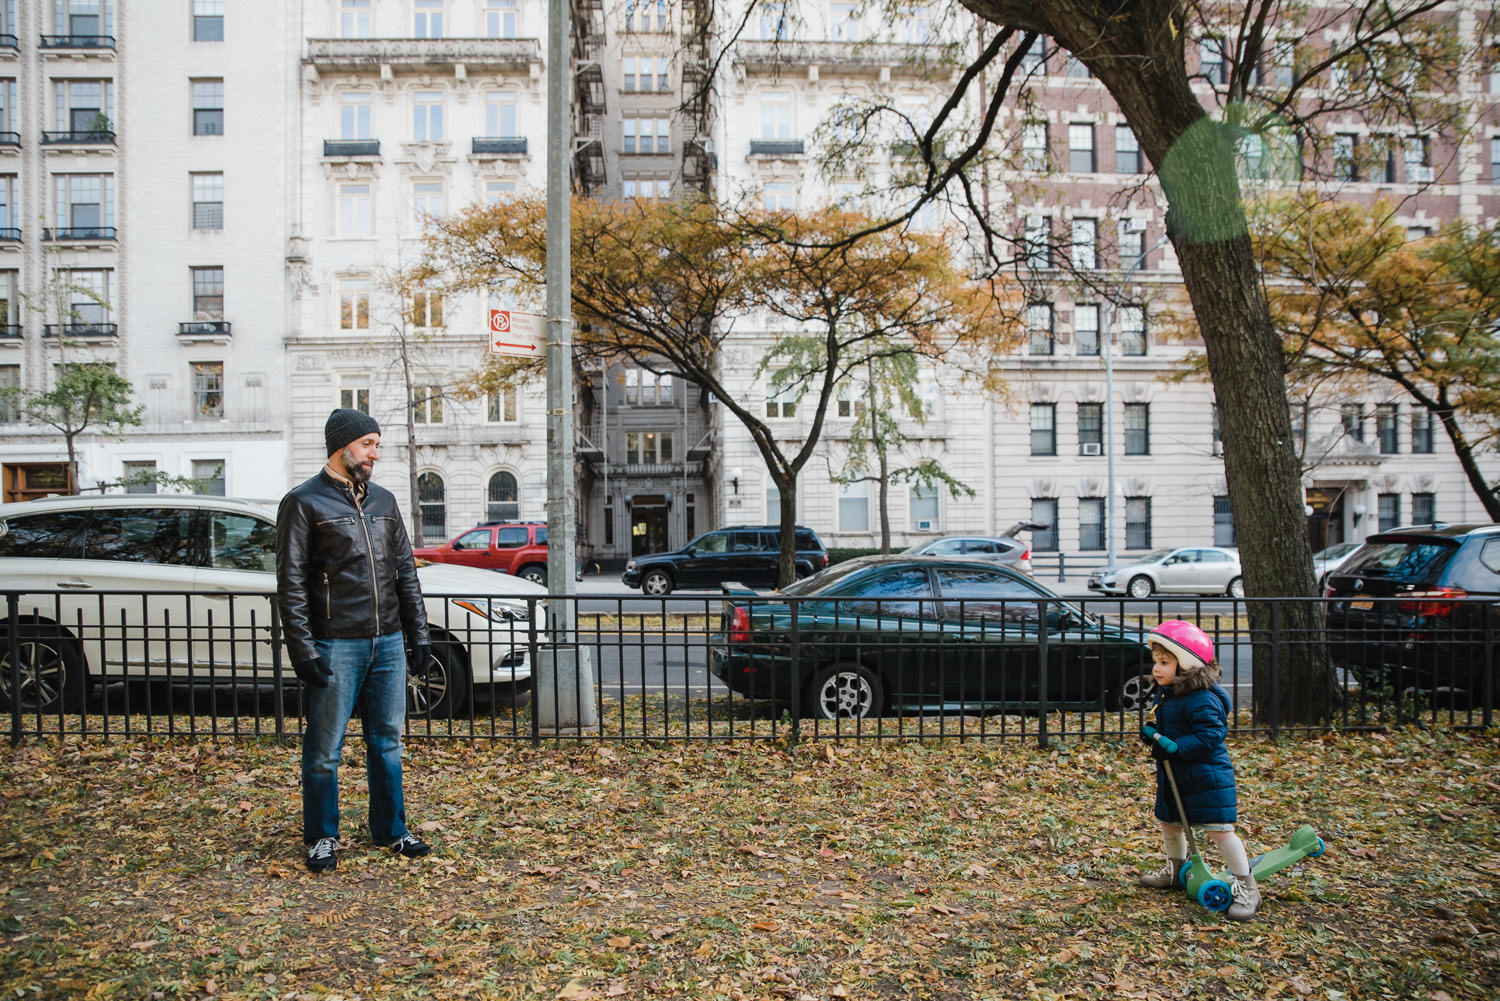 A father and daughter walk through leaves in front of some apartment buildings.